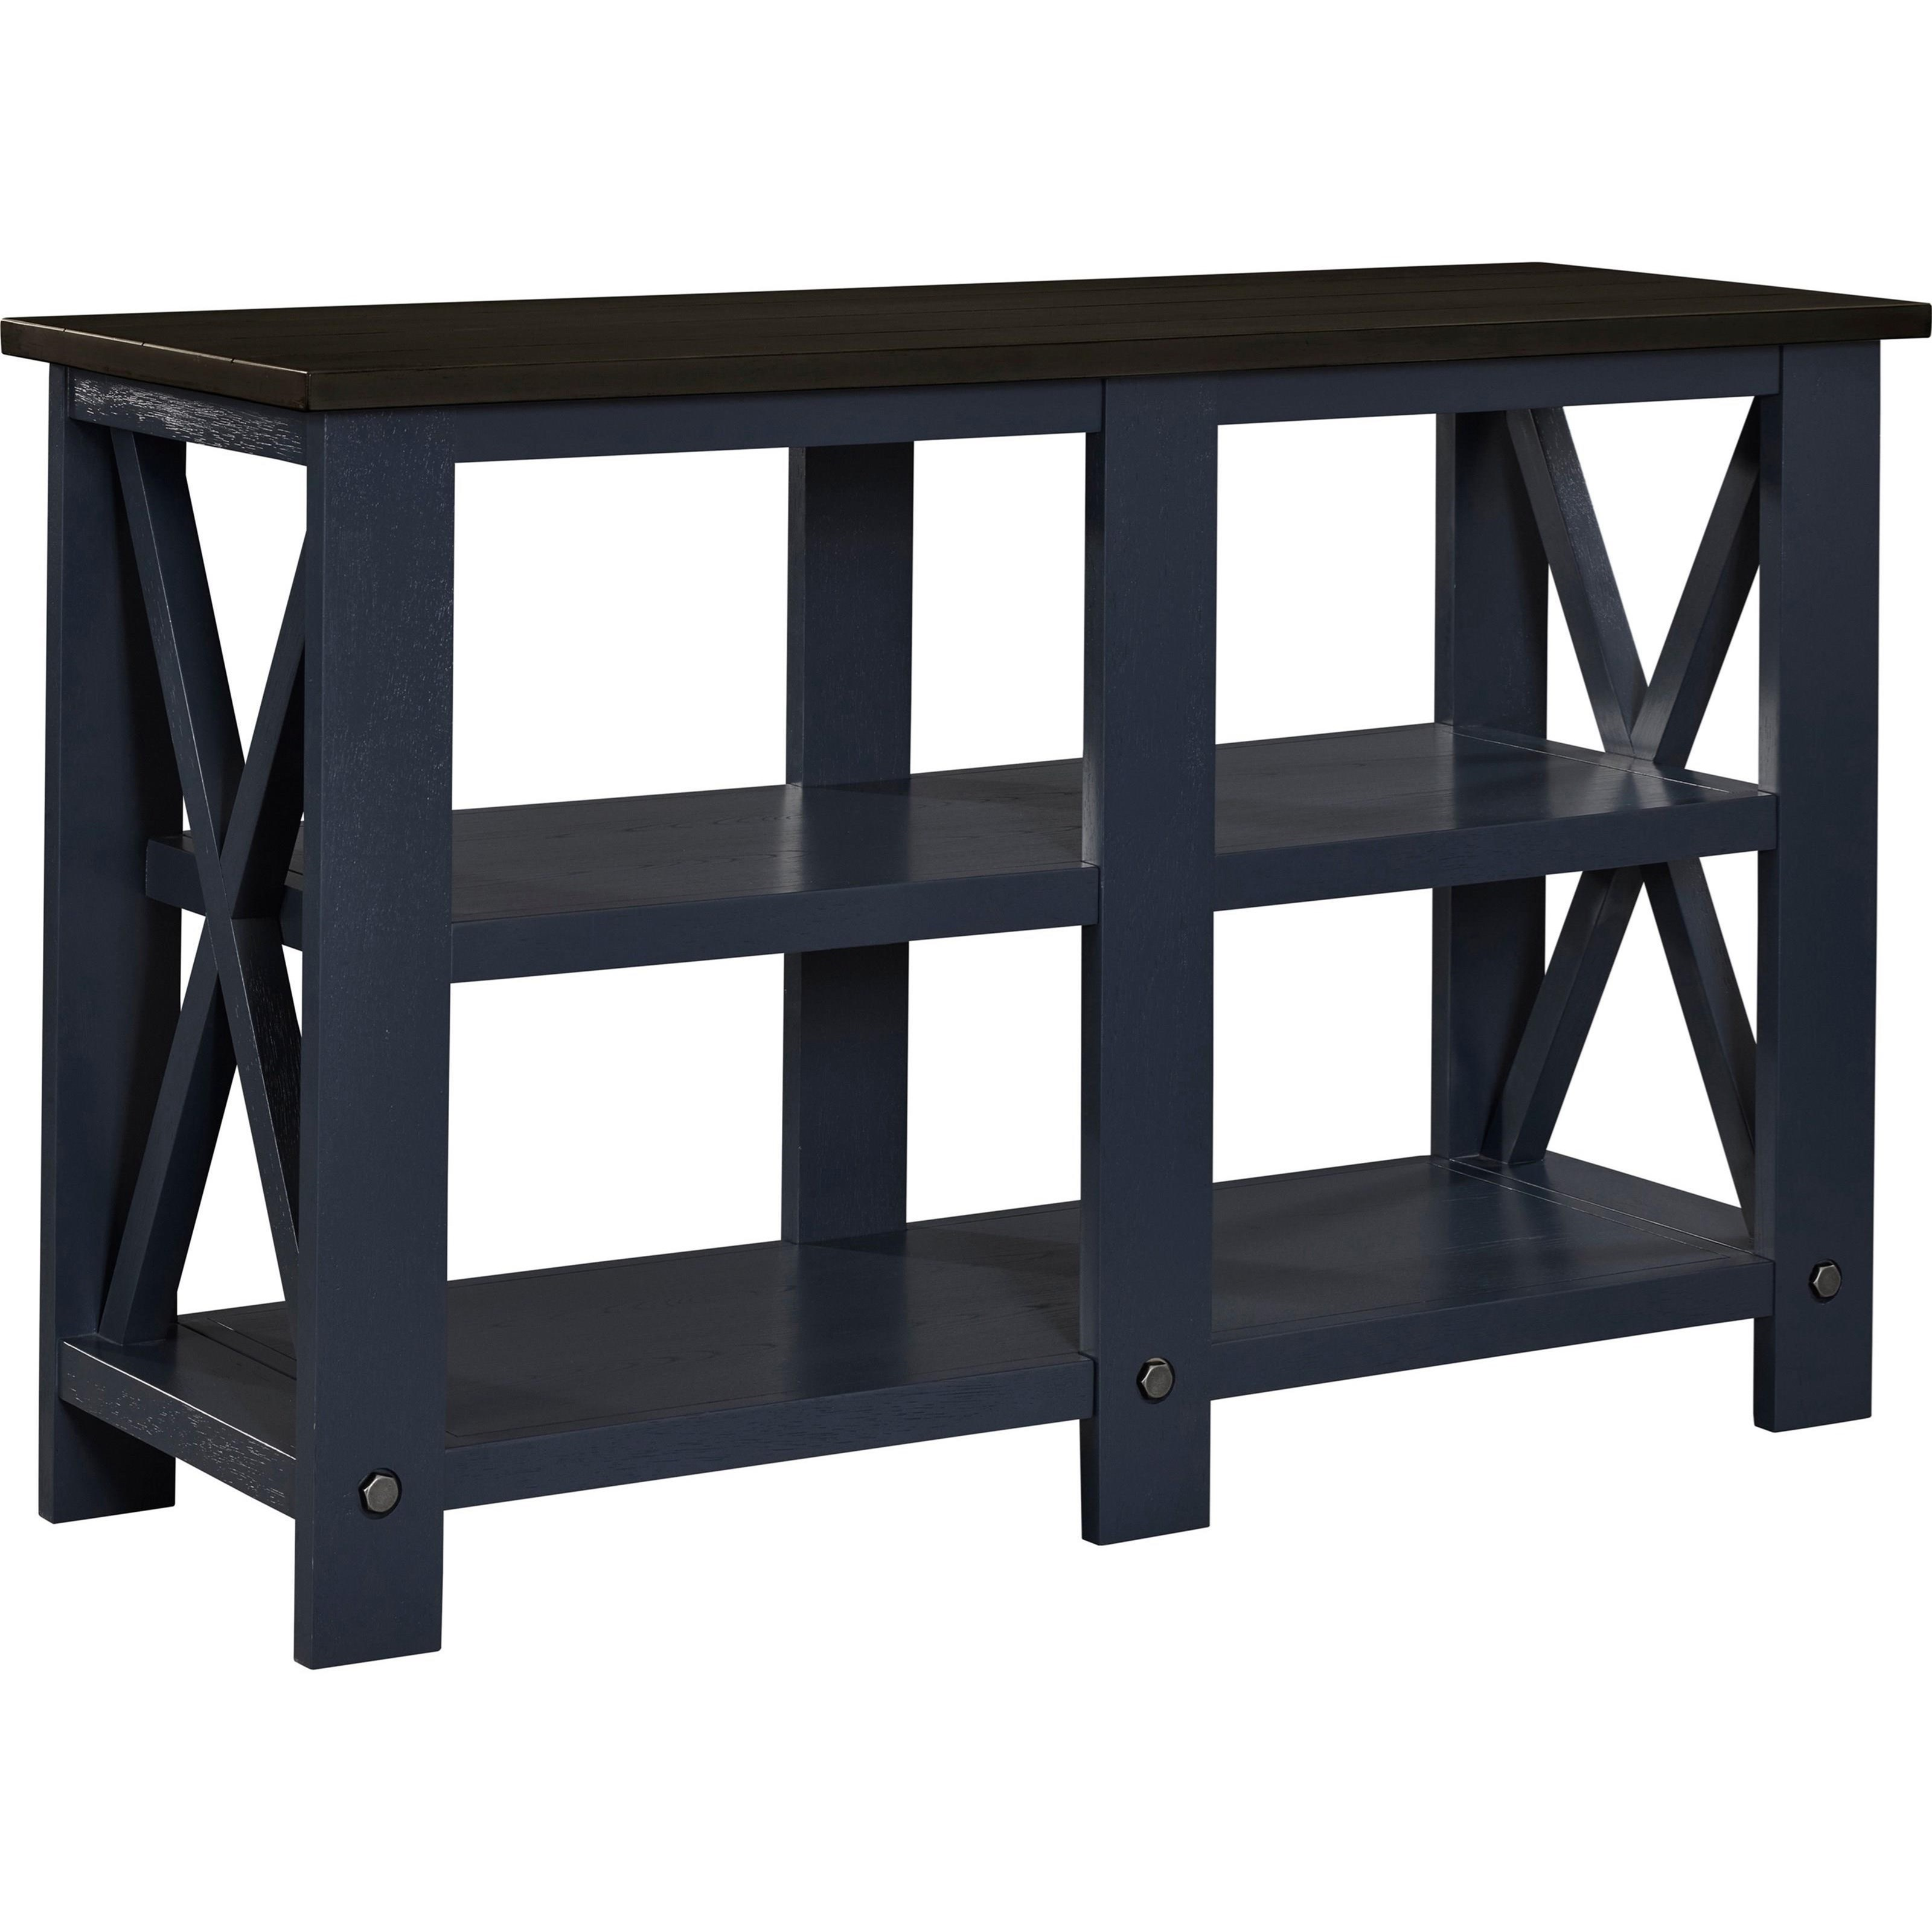 ... Small Console Table. Broyhill Furniture Ashgrove50; Broyhill Furniture  Ashgrove50